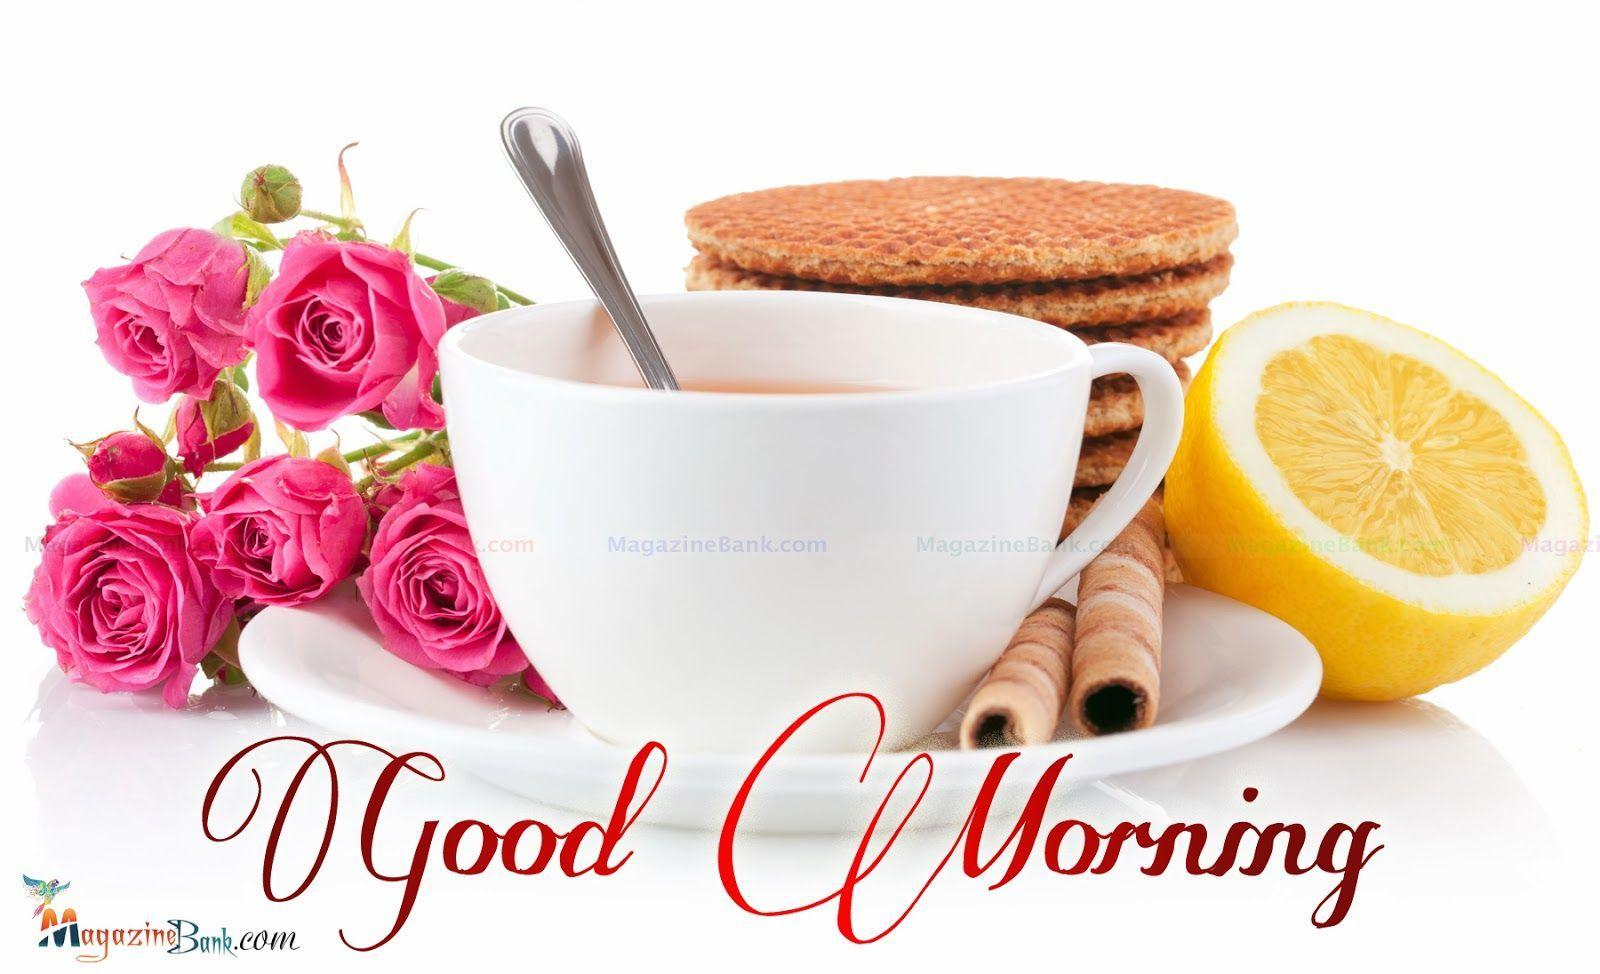 Good Morning New Wallpapers Wallpaper Cave